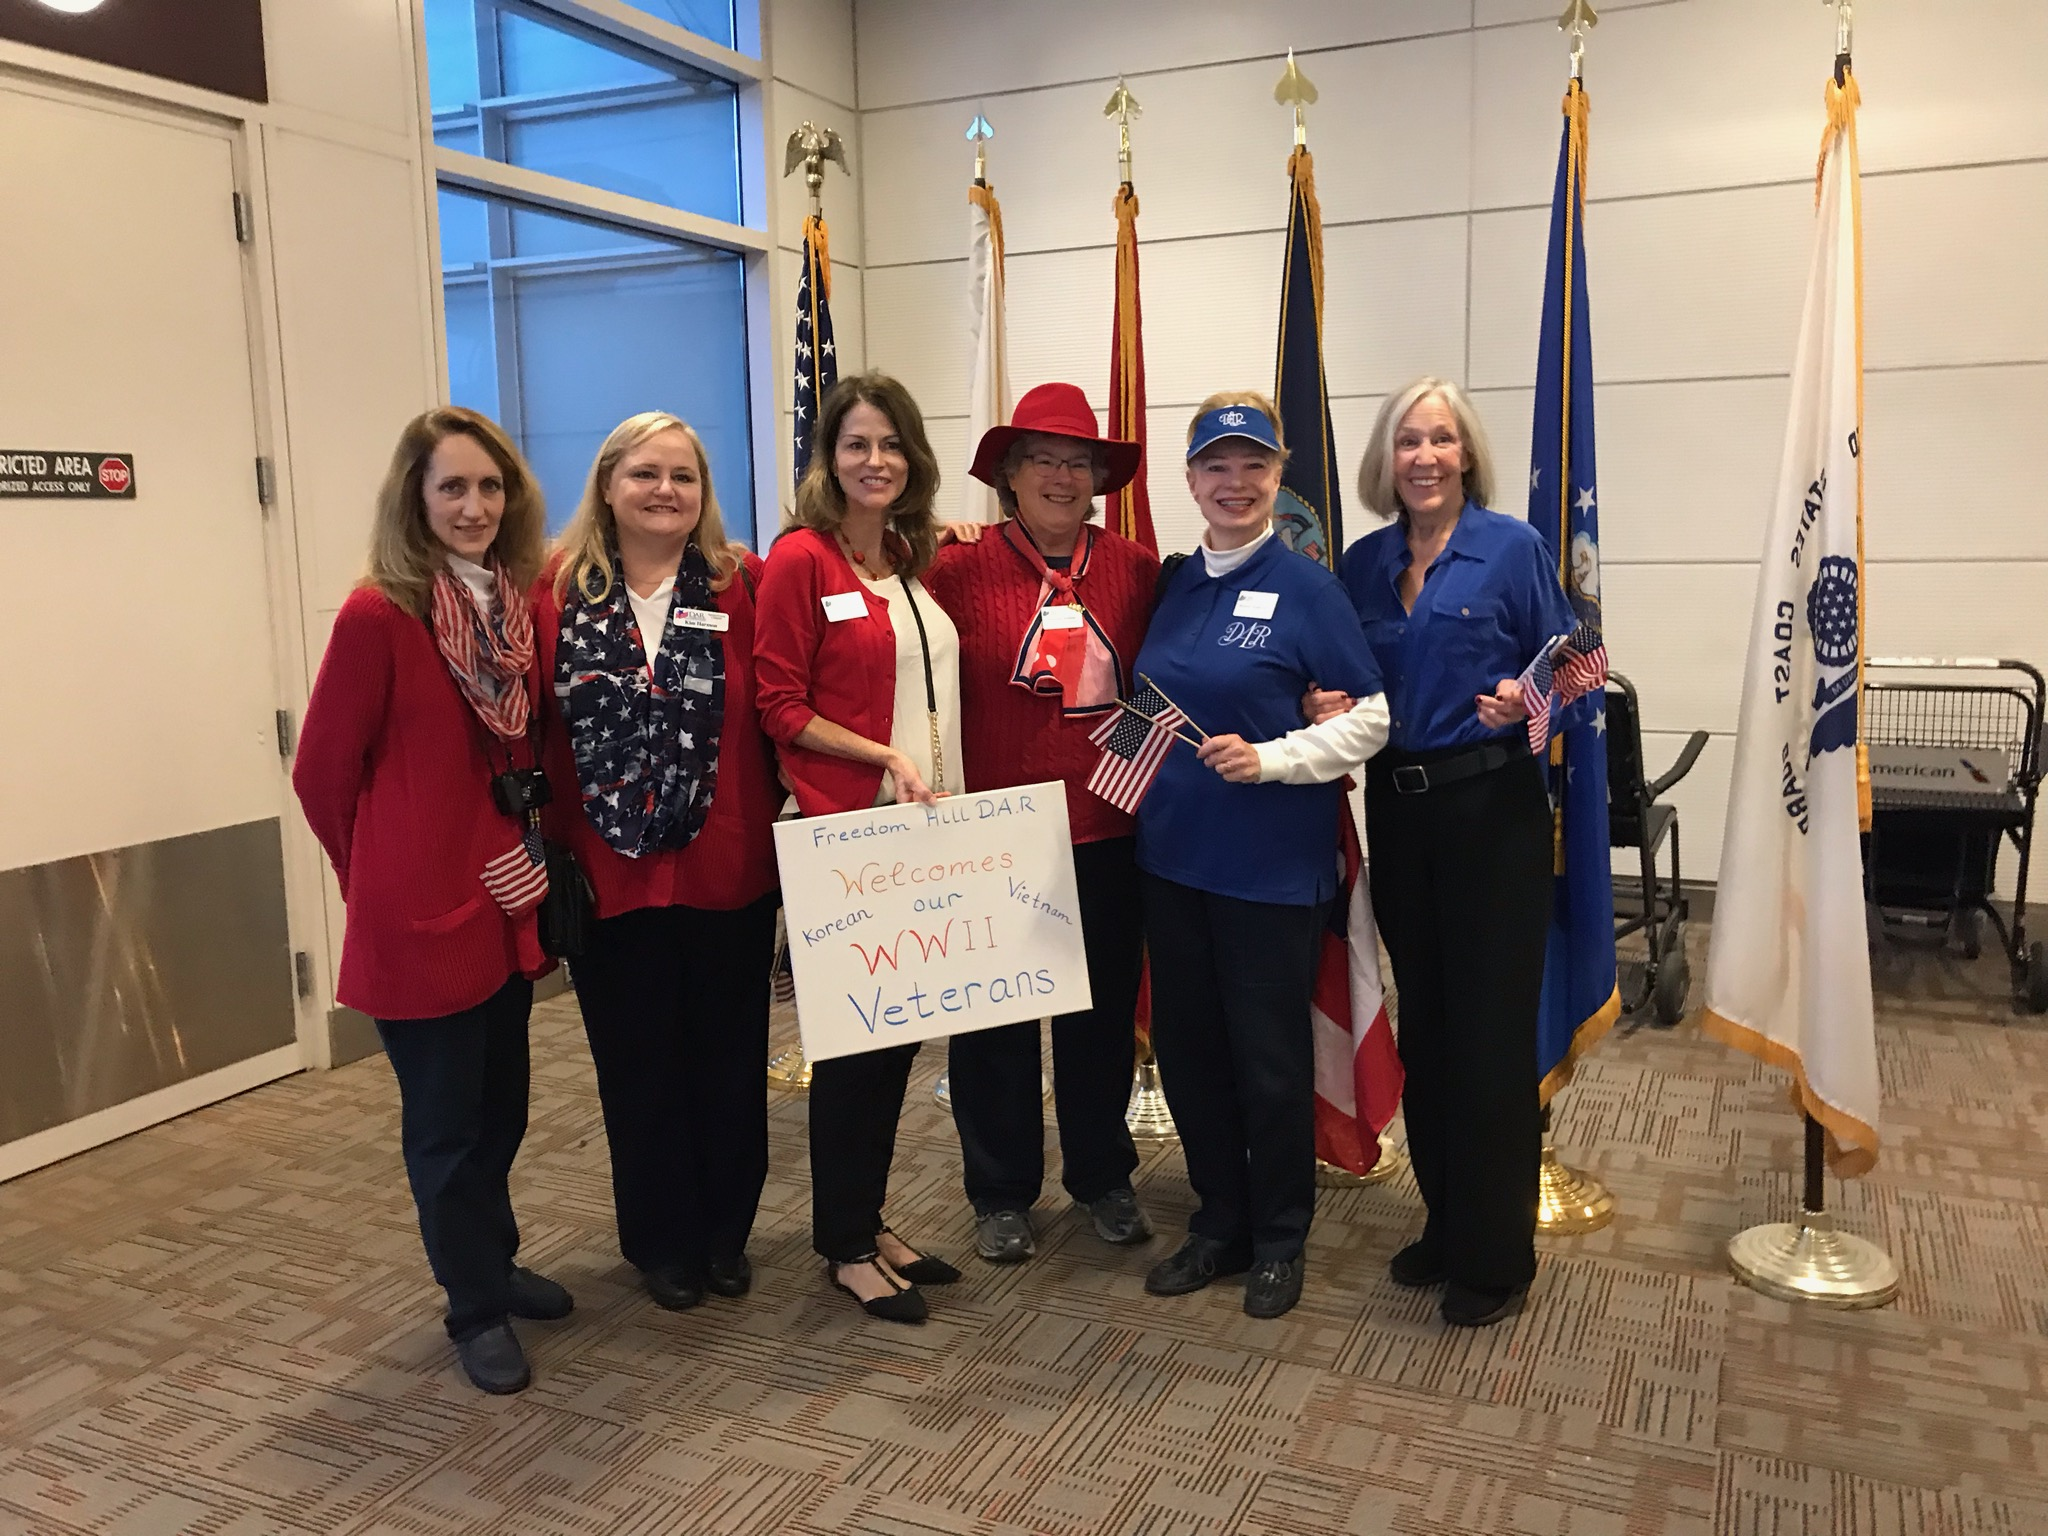 Freedom Hill Daughters greet veterans at their Honor Flight, Reagan National Airport, October 2018